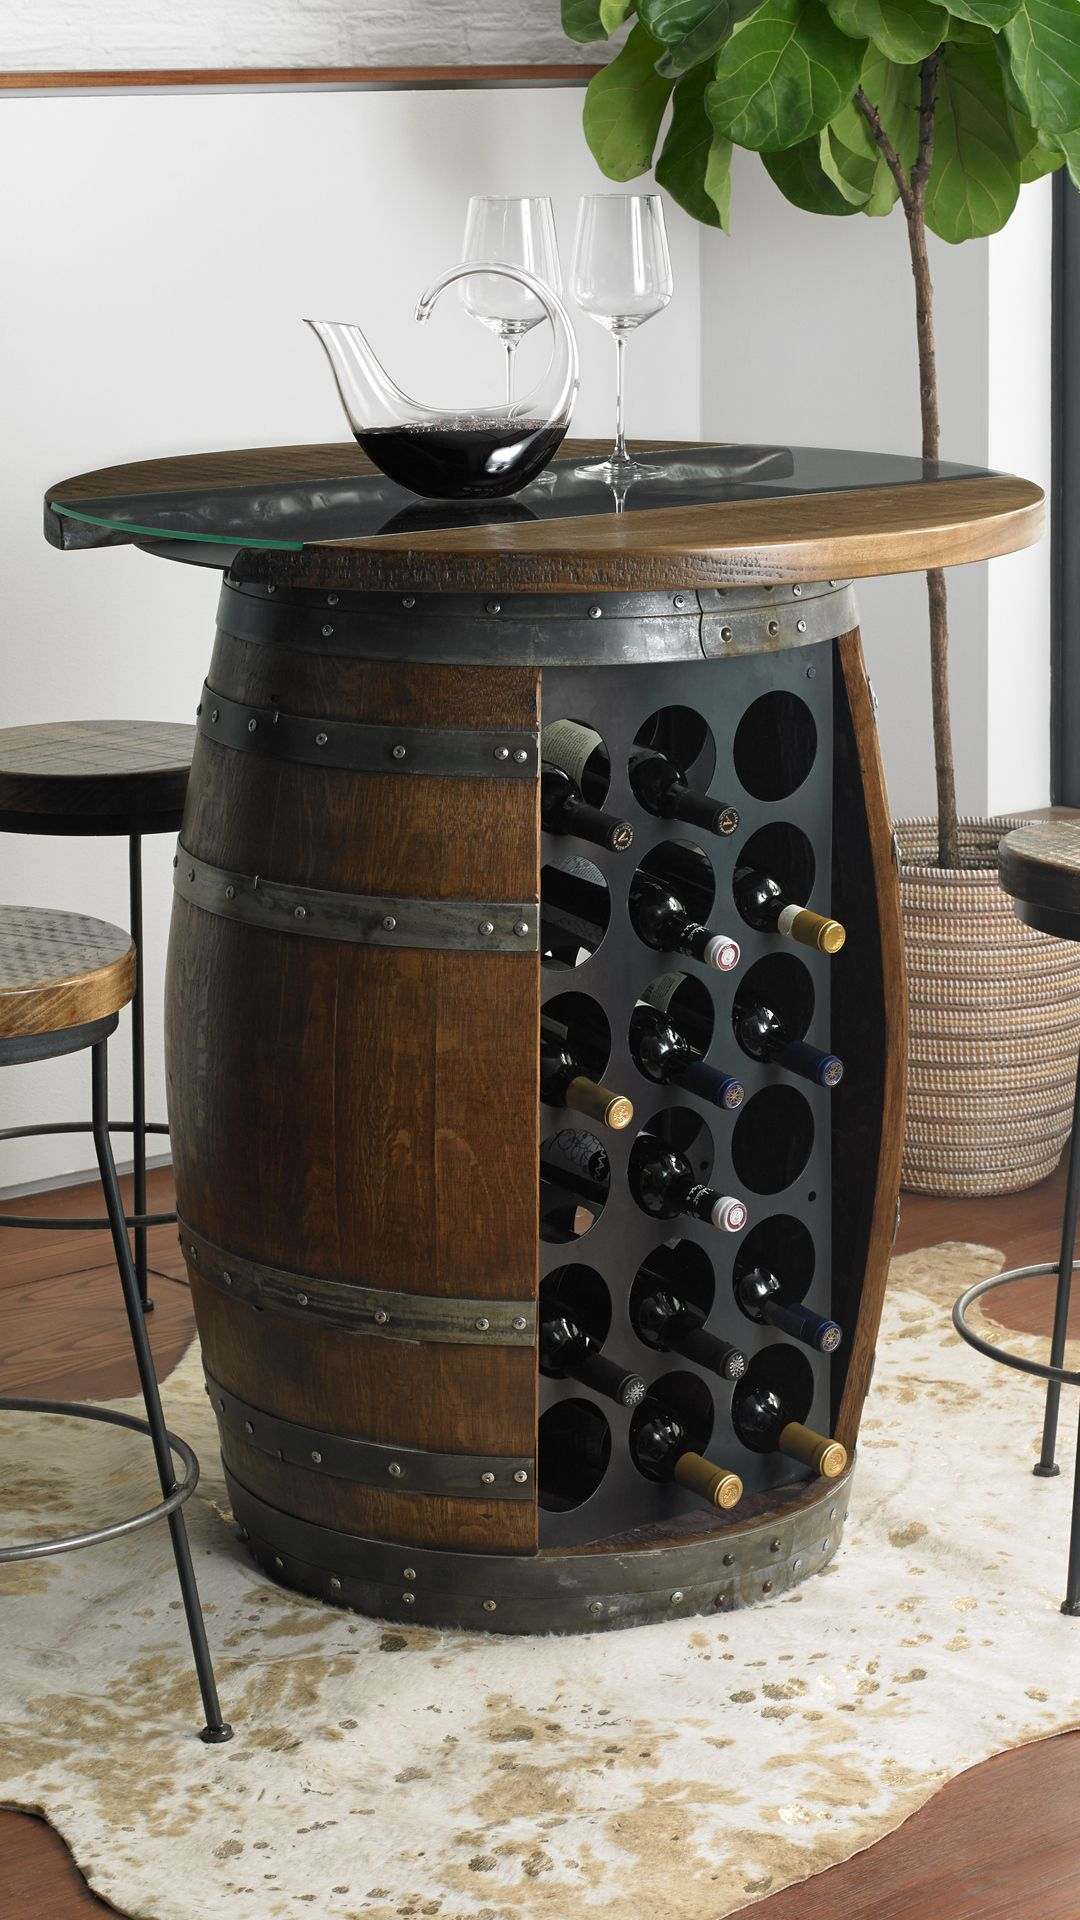 Loire Wine Barrel Pub Table With Glass And Wood Top In 2020 Wine Barrel Table Barrel Coffee Table Wine Barrel Furniture